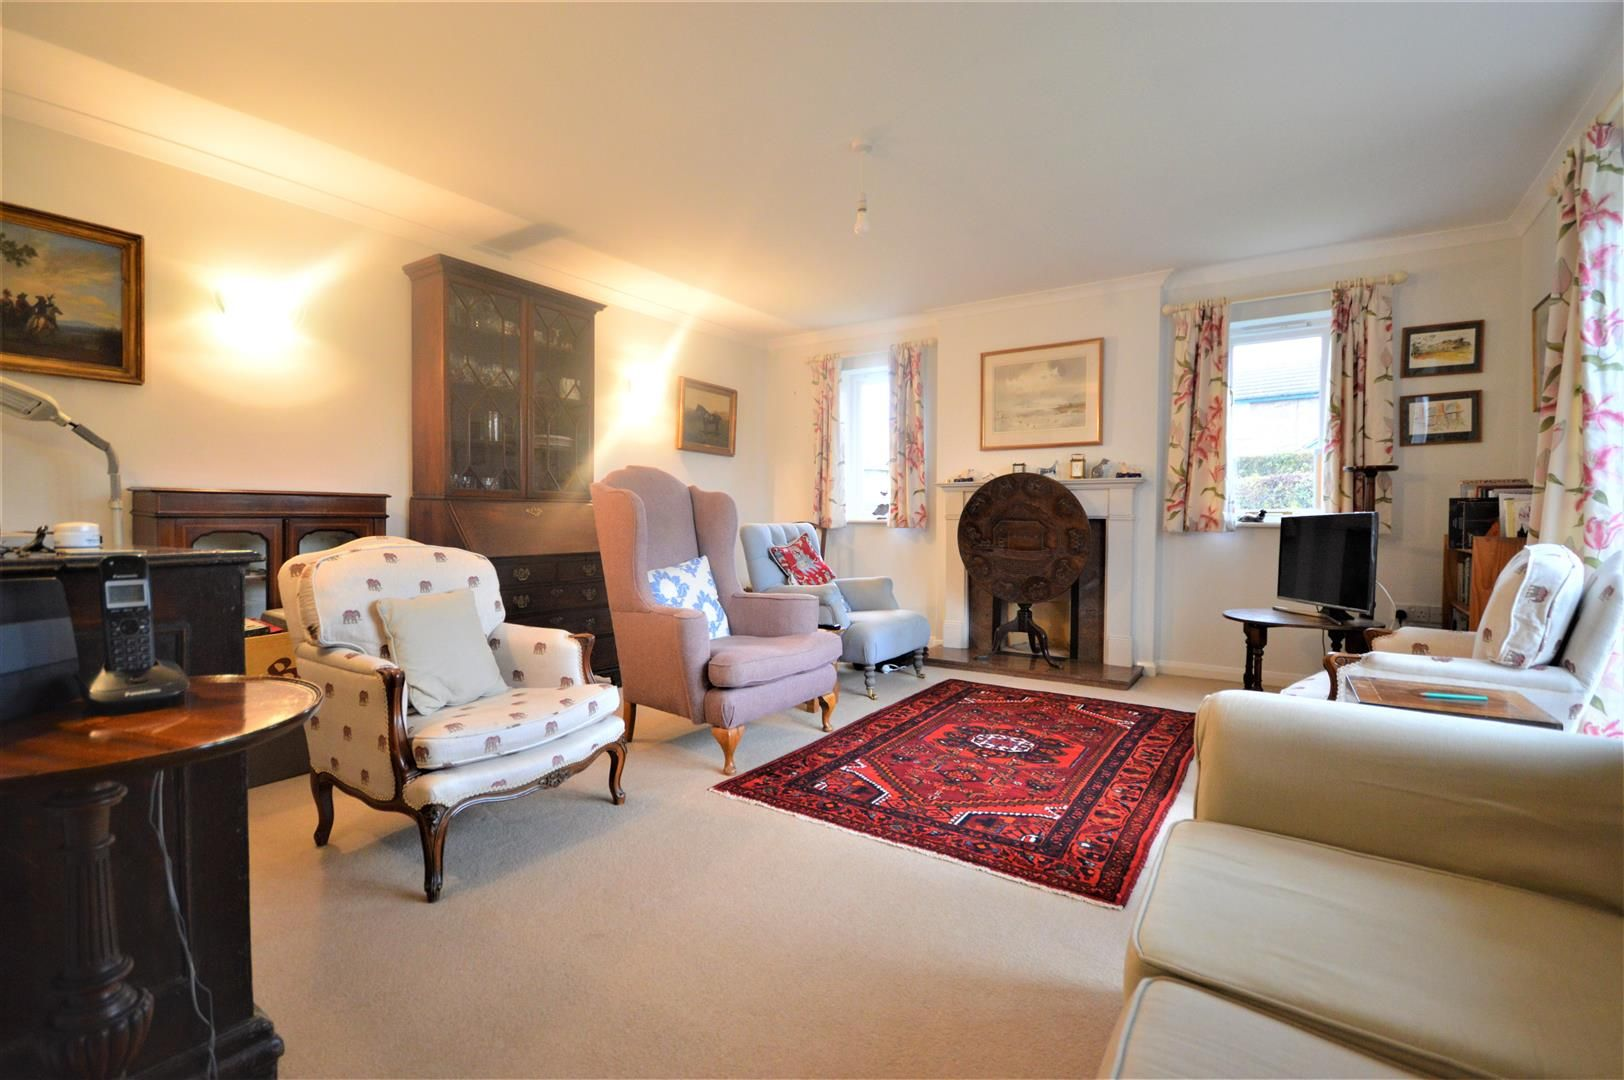 3 bed detached-bungalow for sale in Almeley  - Property Image 2